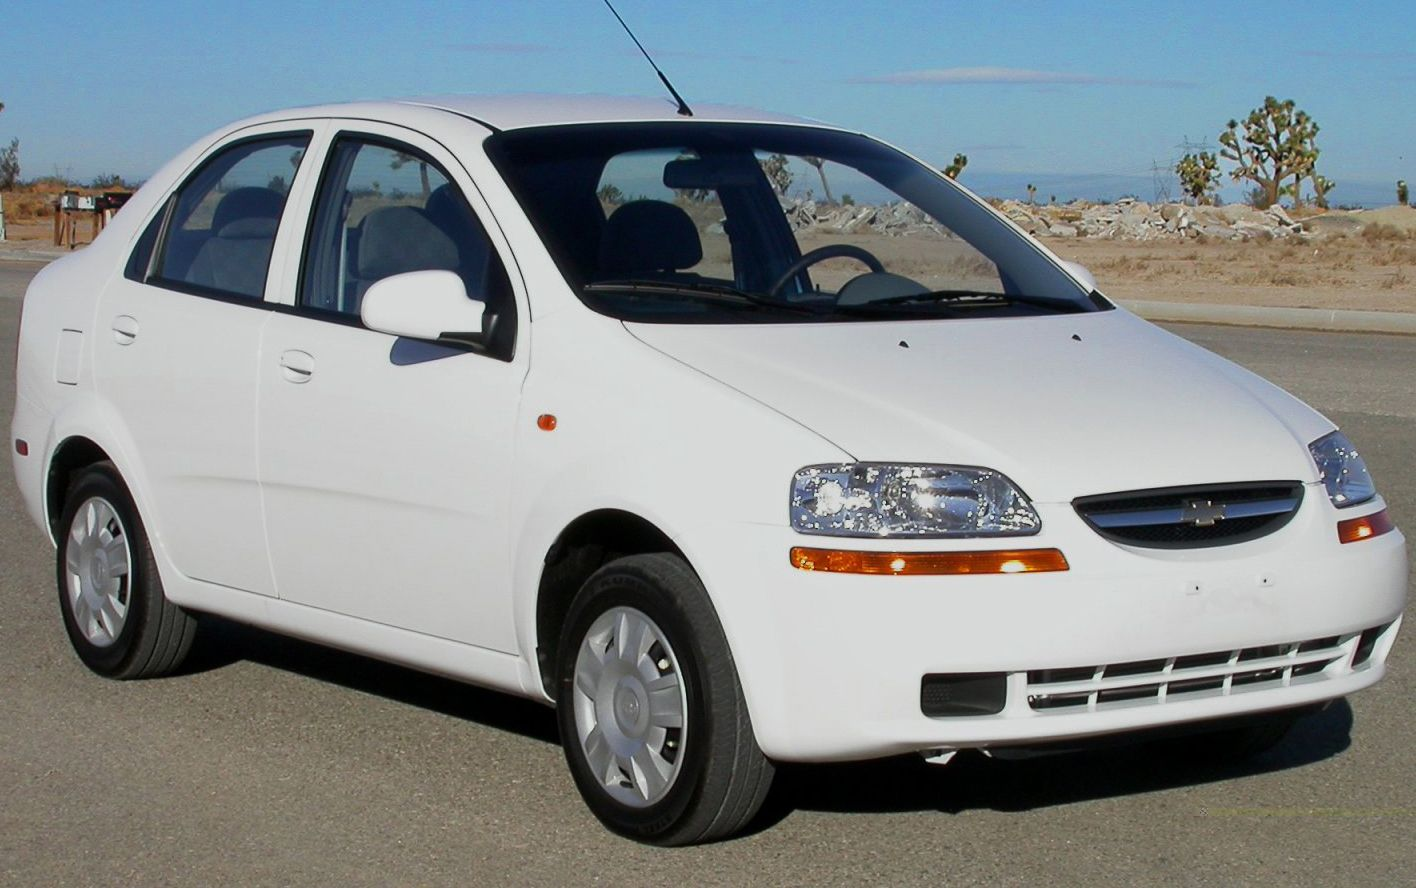 2011 Chevrolet Aveo Owners Manual